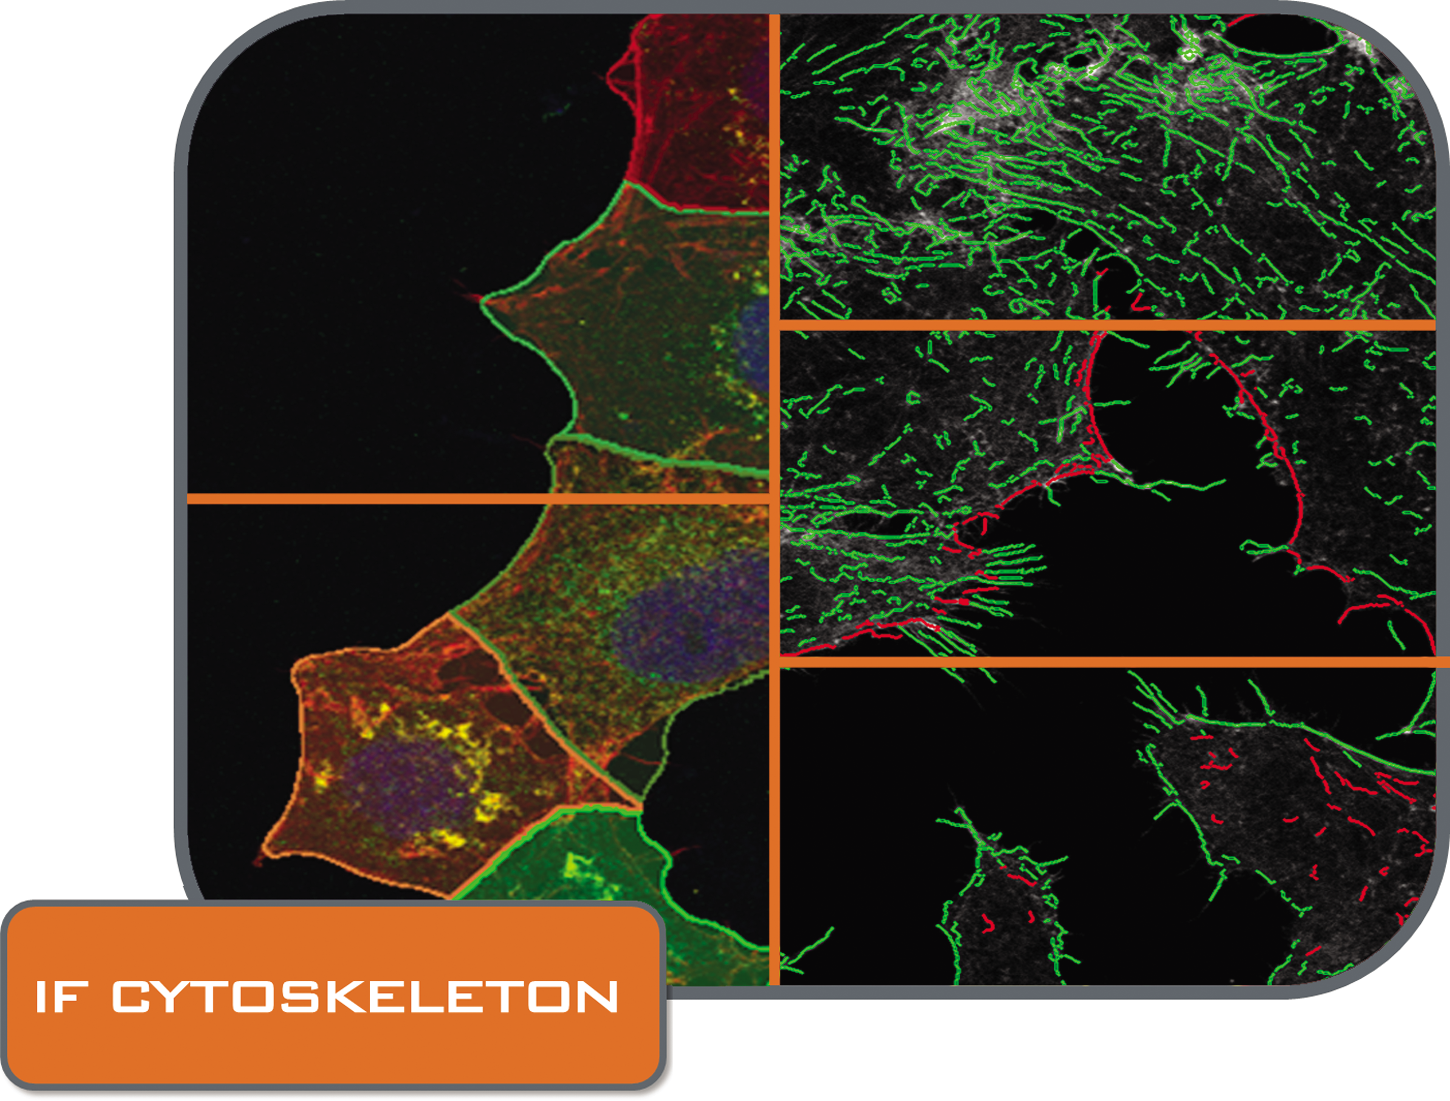 IF Cytoskeleton folder_CMYK.png